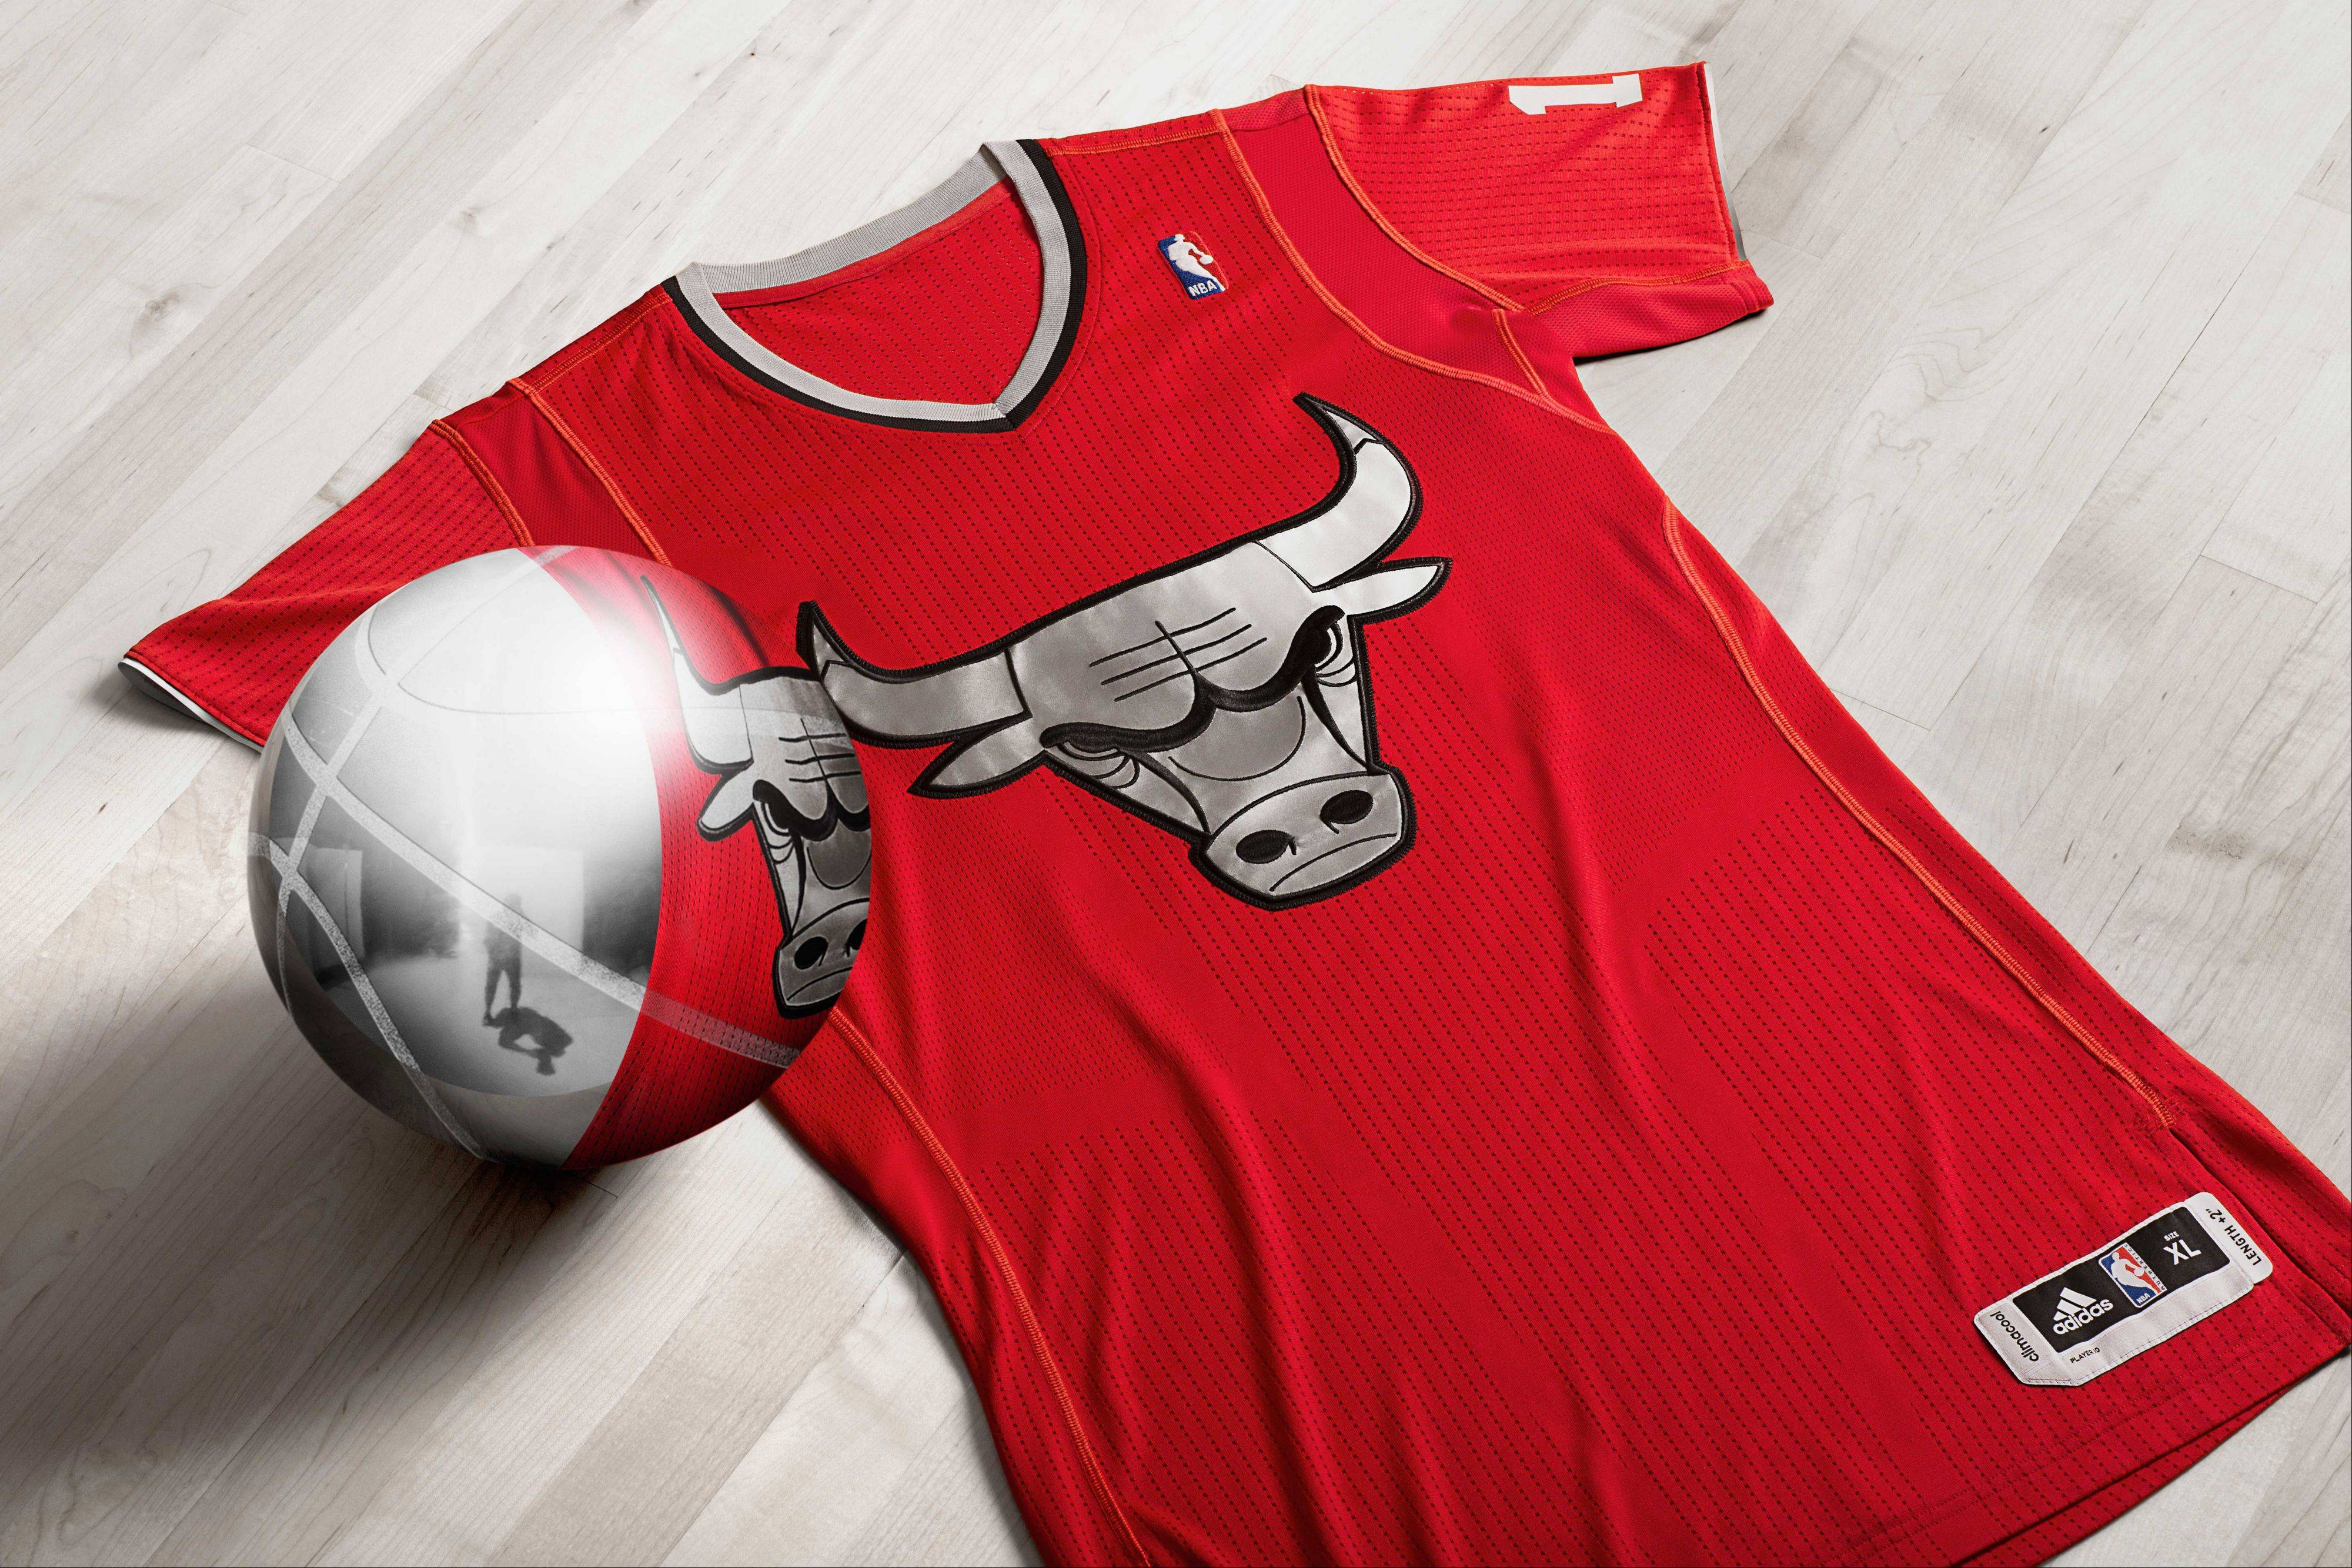 Photo courtesy of the NBAIn addition to the jerseys, the NBA will market other products featuring the BIG Logo design for fans to purchase.